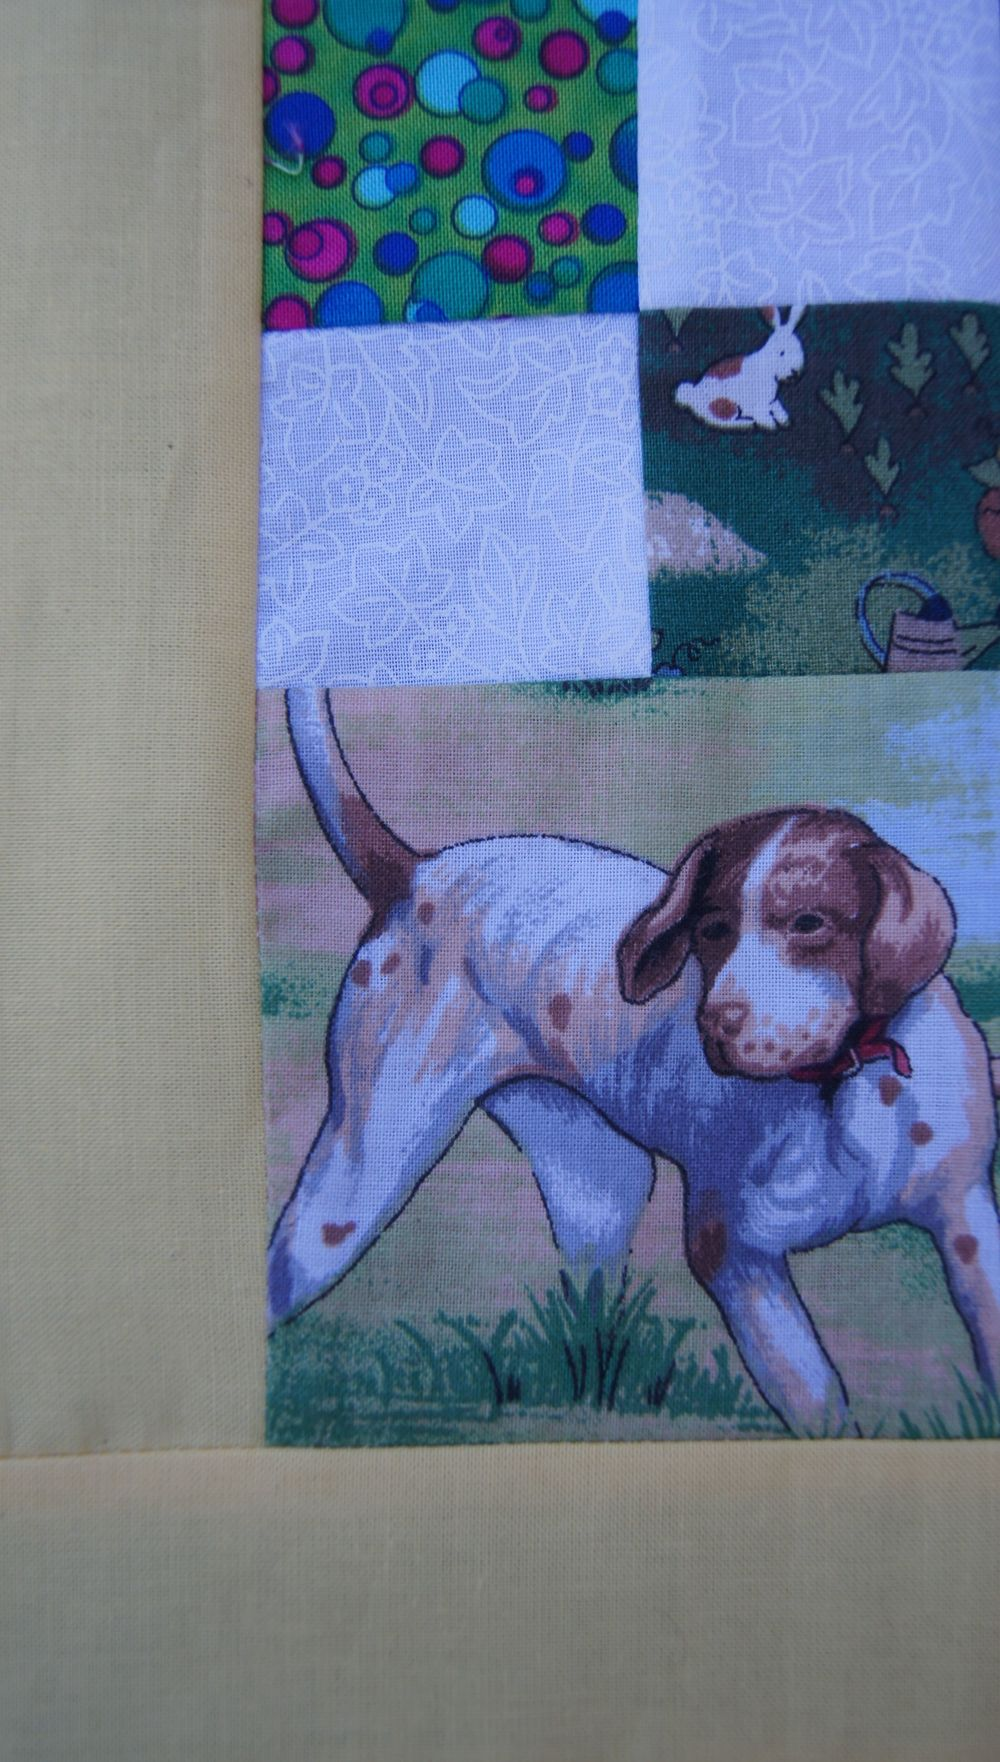 Quilt Grand Illusion Cornerstone 3 with rabbit.jpg